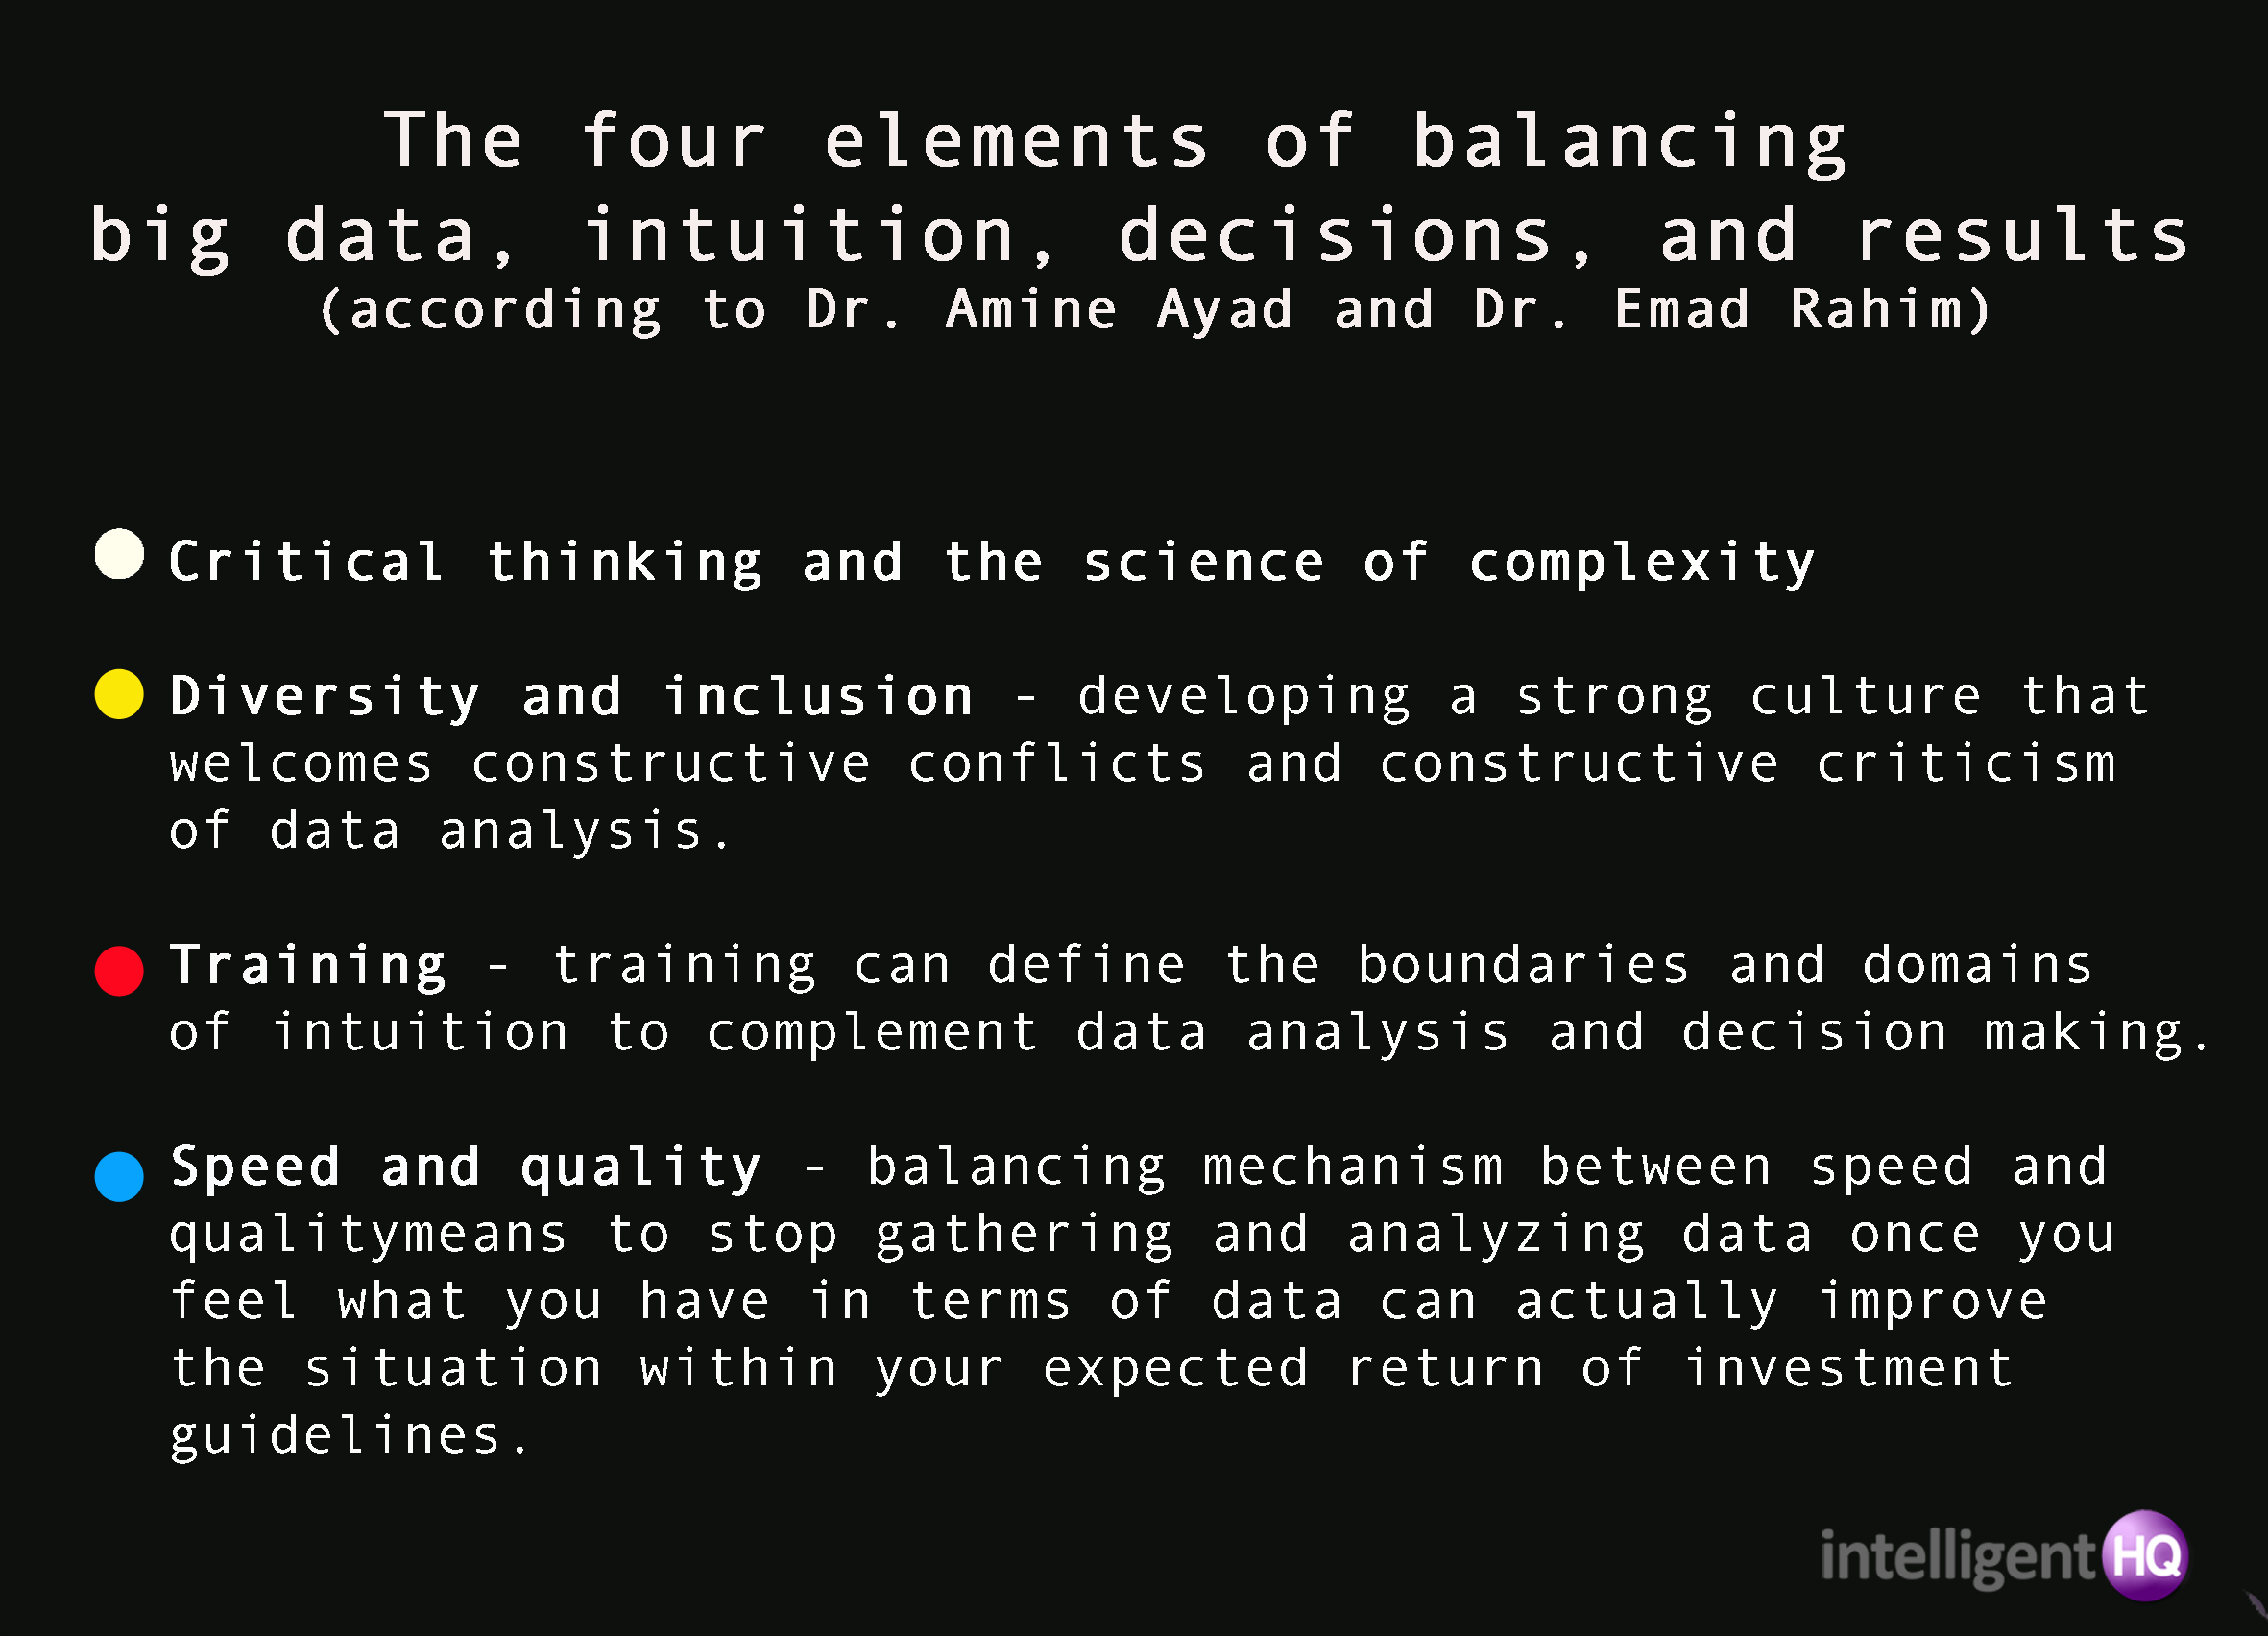 The Four Elements of Balancing Big Data, Intuition, Decisions, and Results Intelligenthq